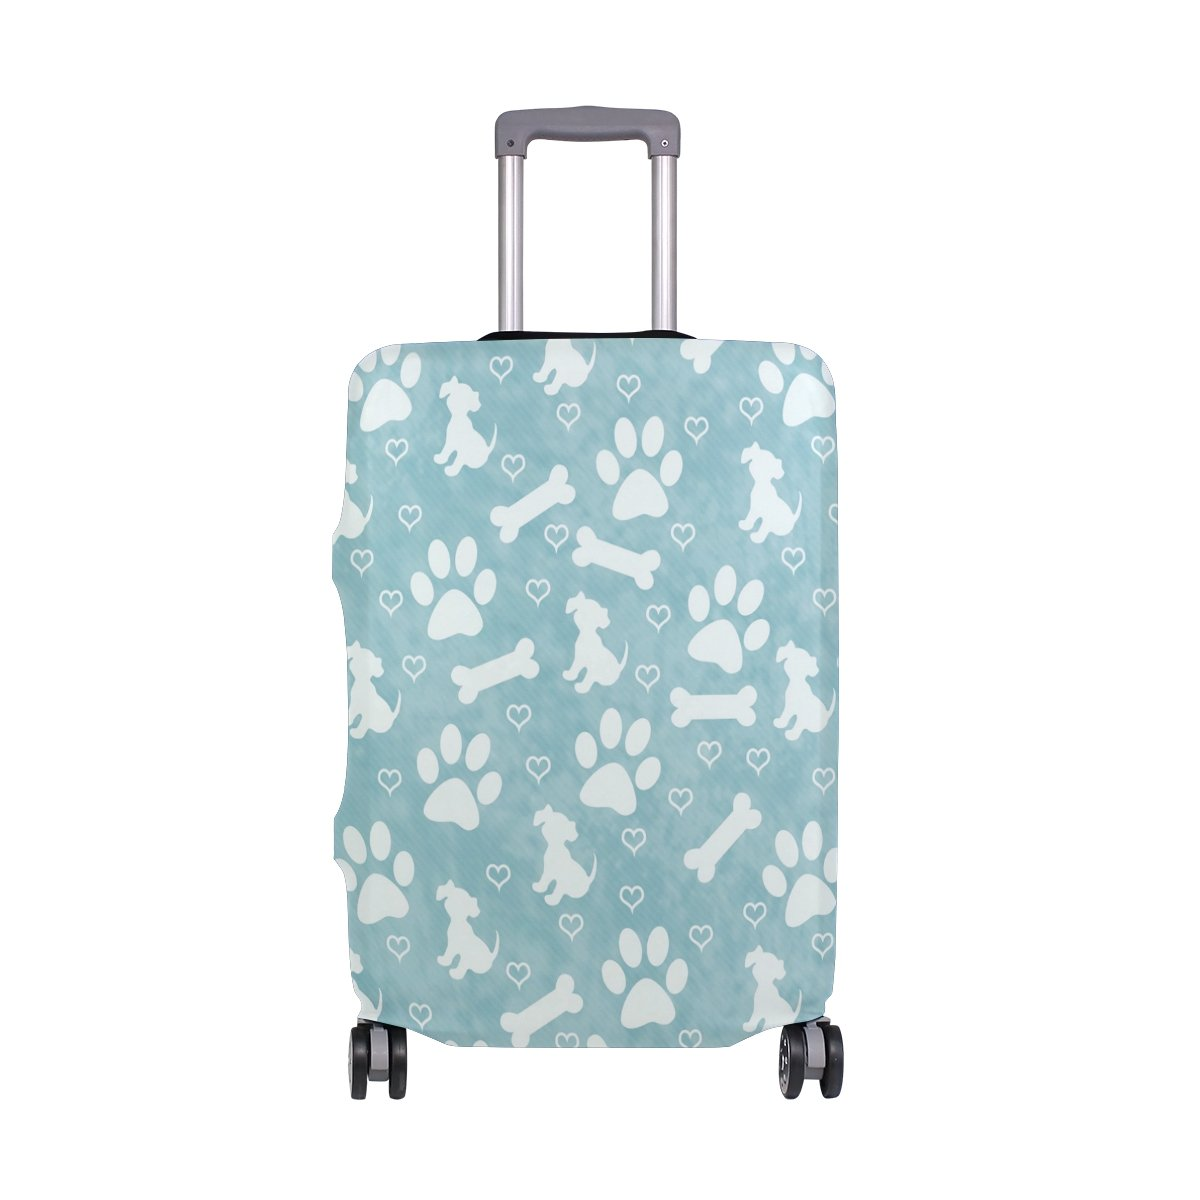 Vintage Cute Dog Love Heart Suitcase Luggage Cover Protector for Travel Kids Men Women